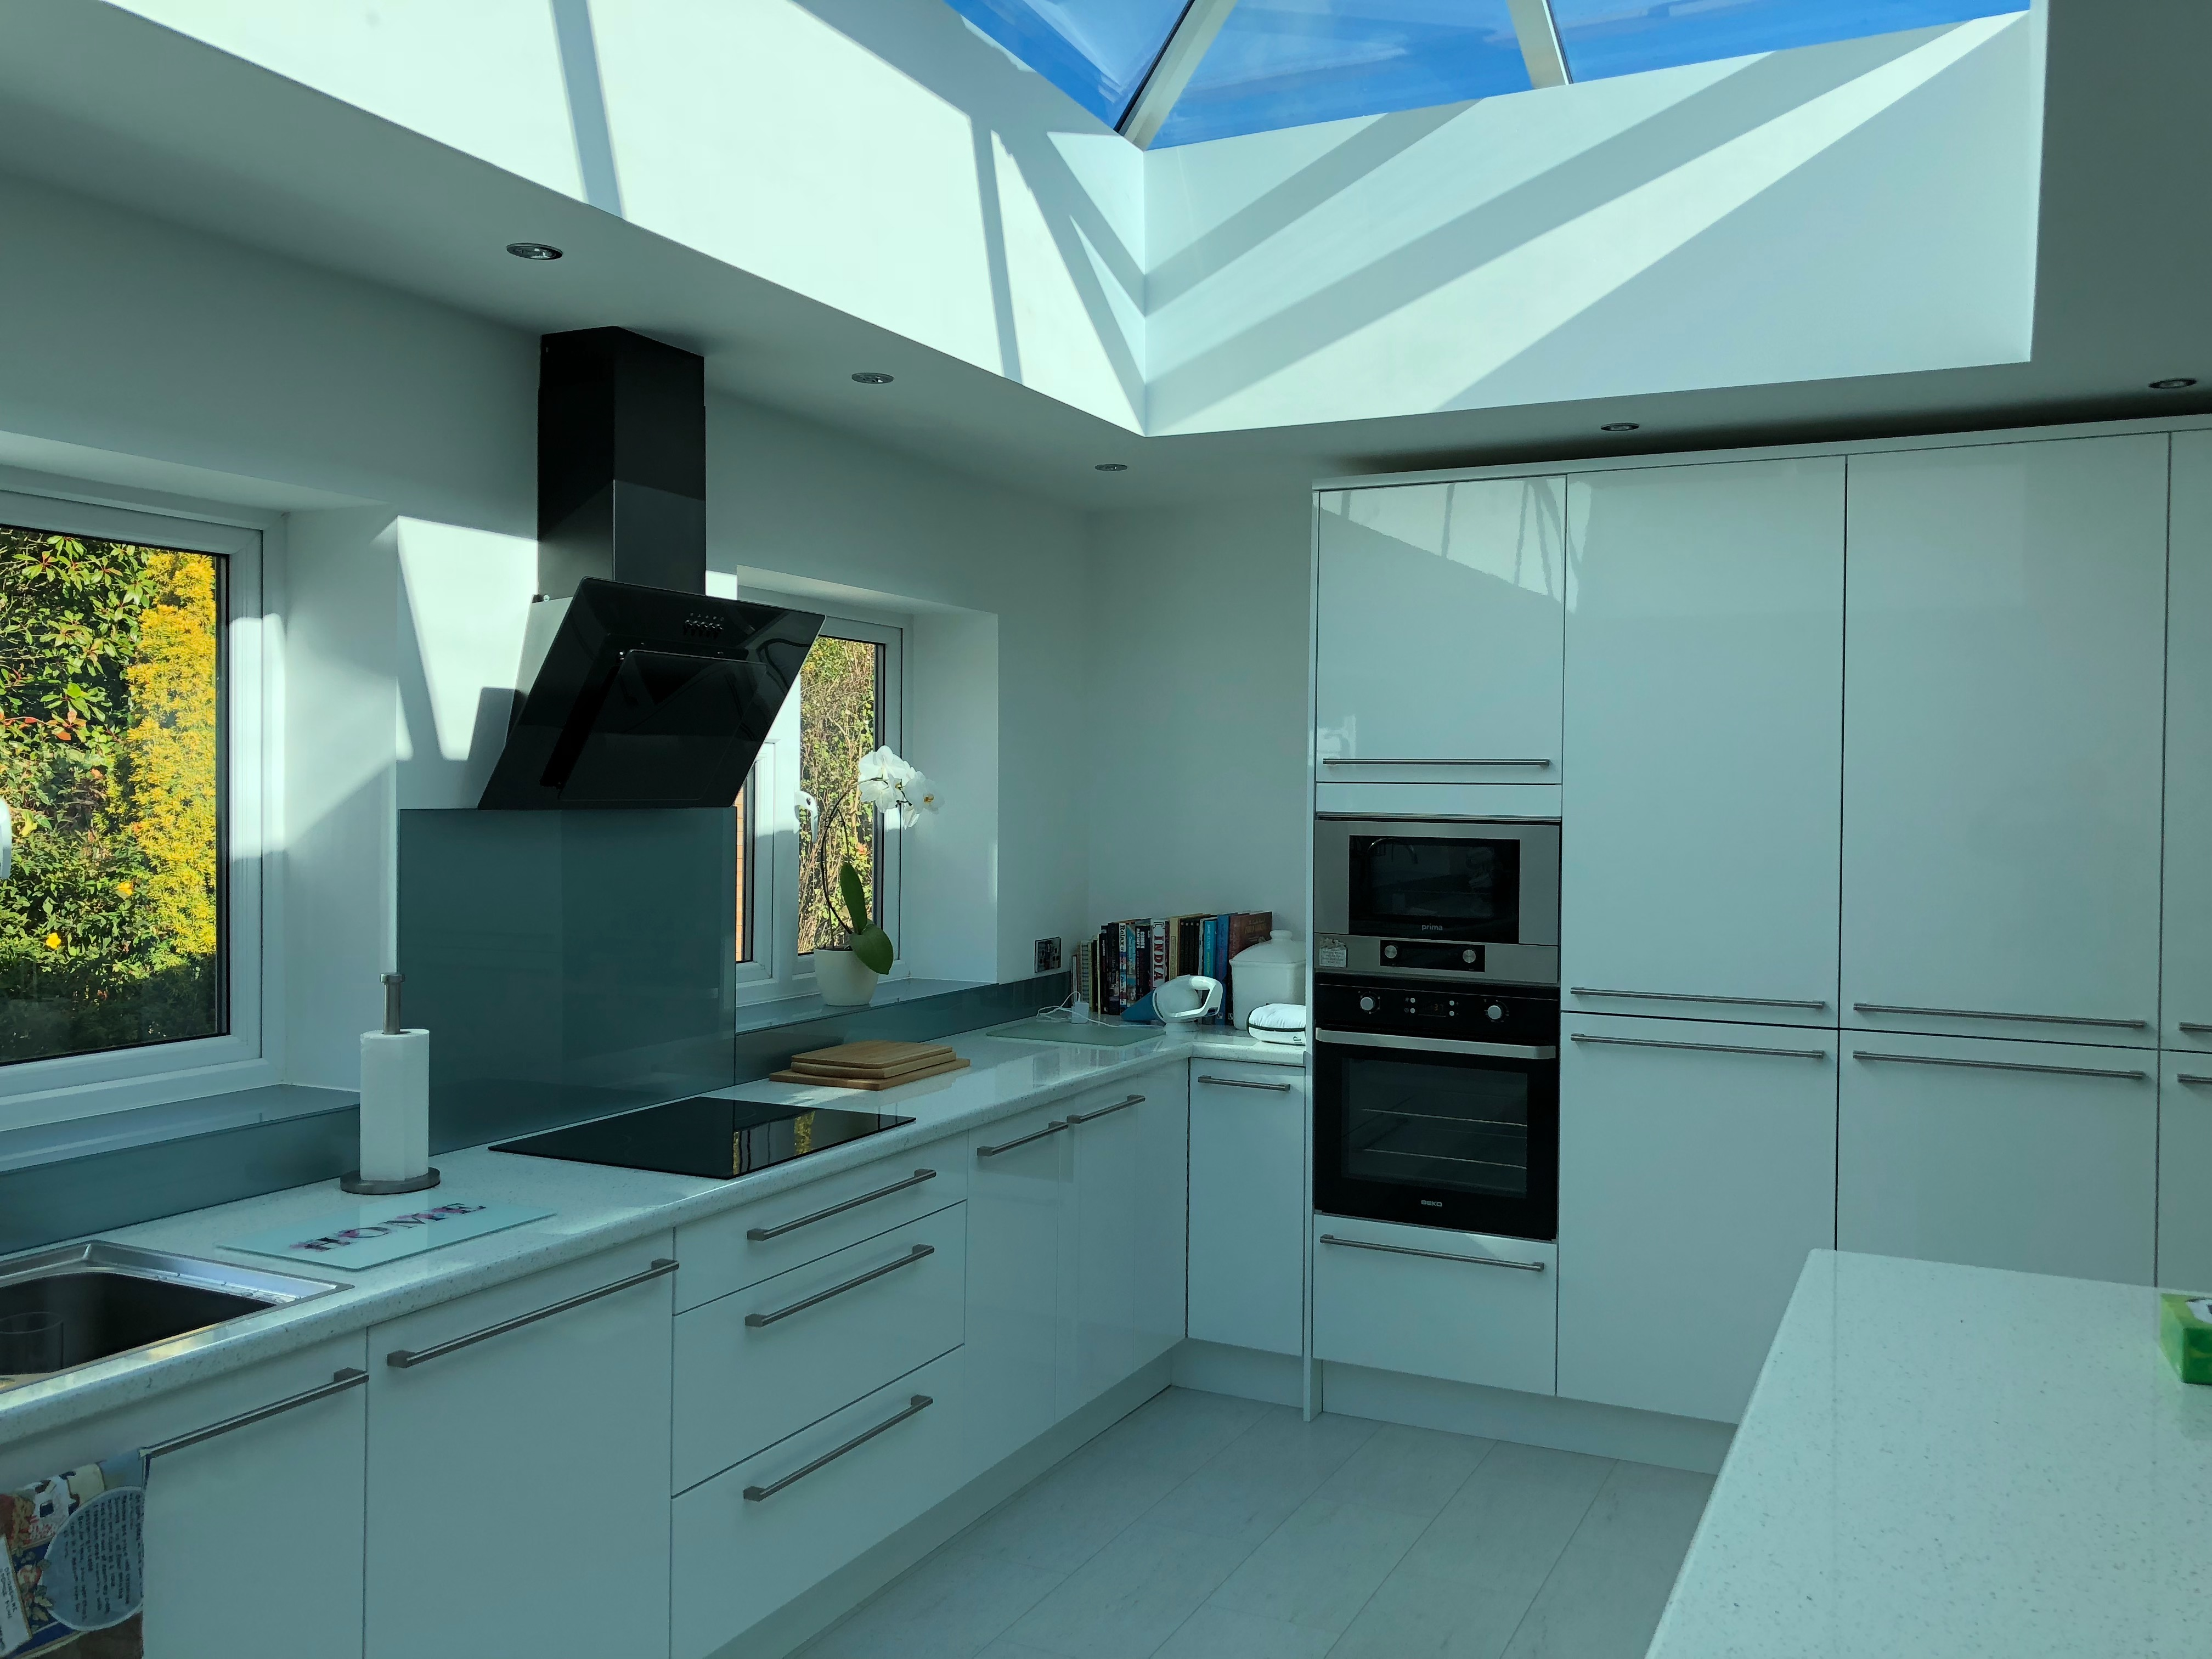 4. Stone Kitchen Extension